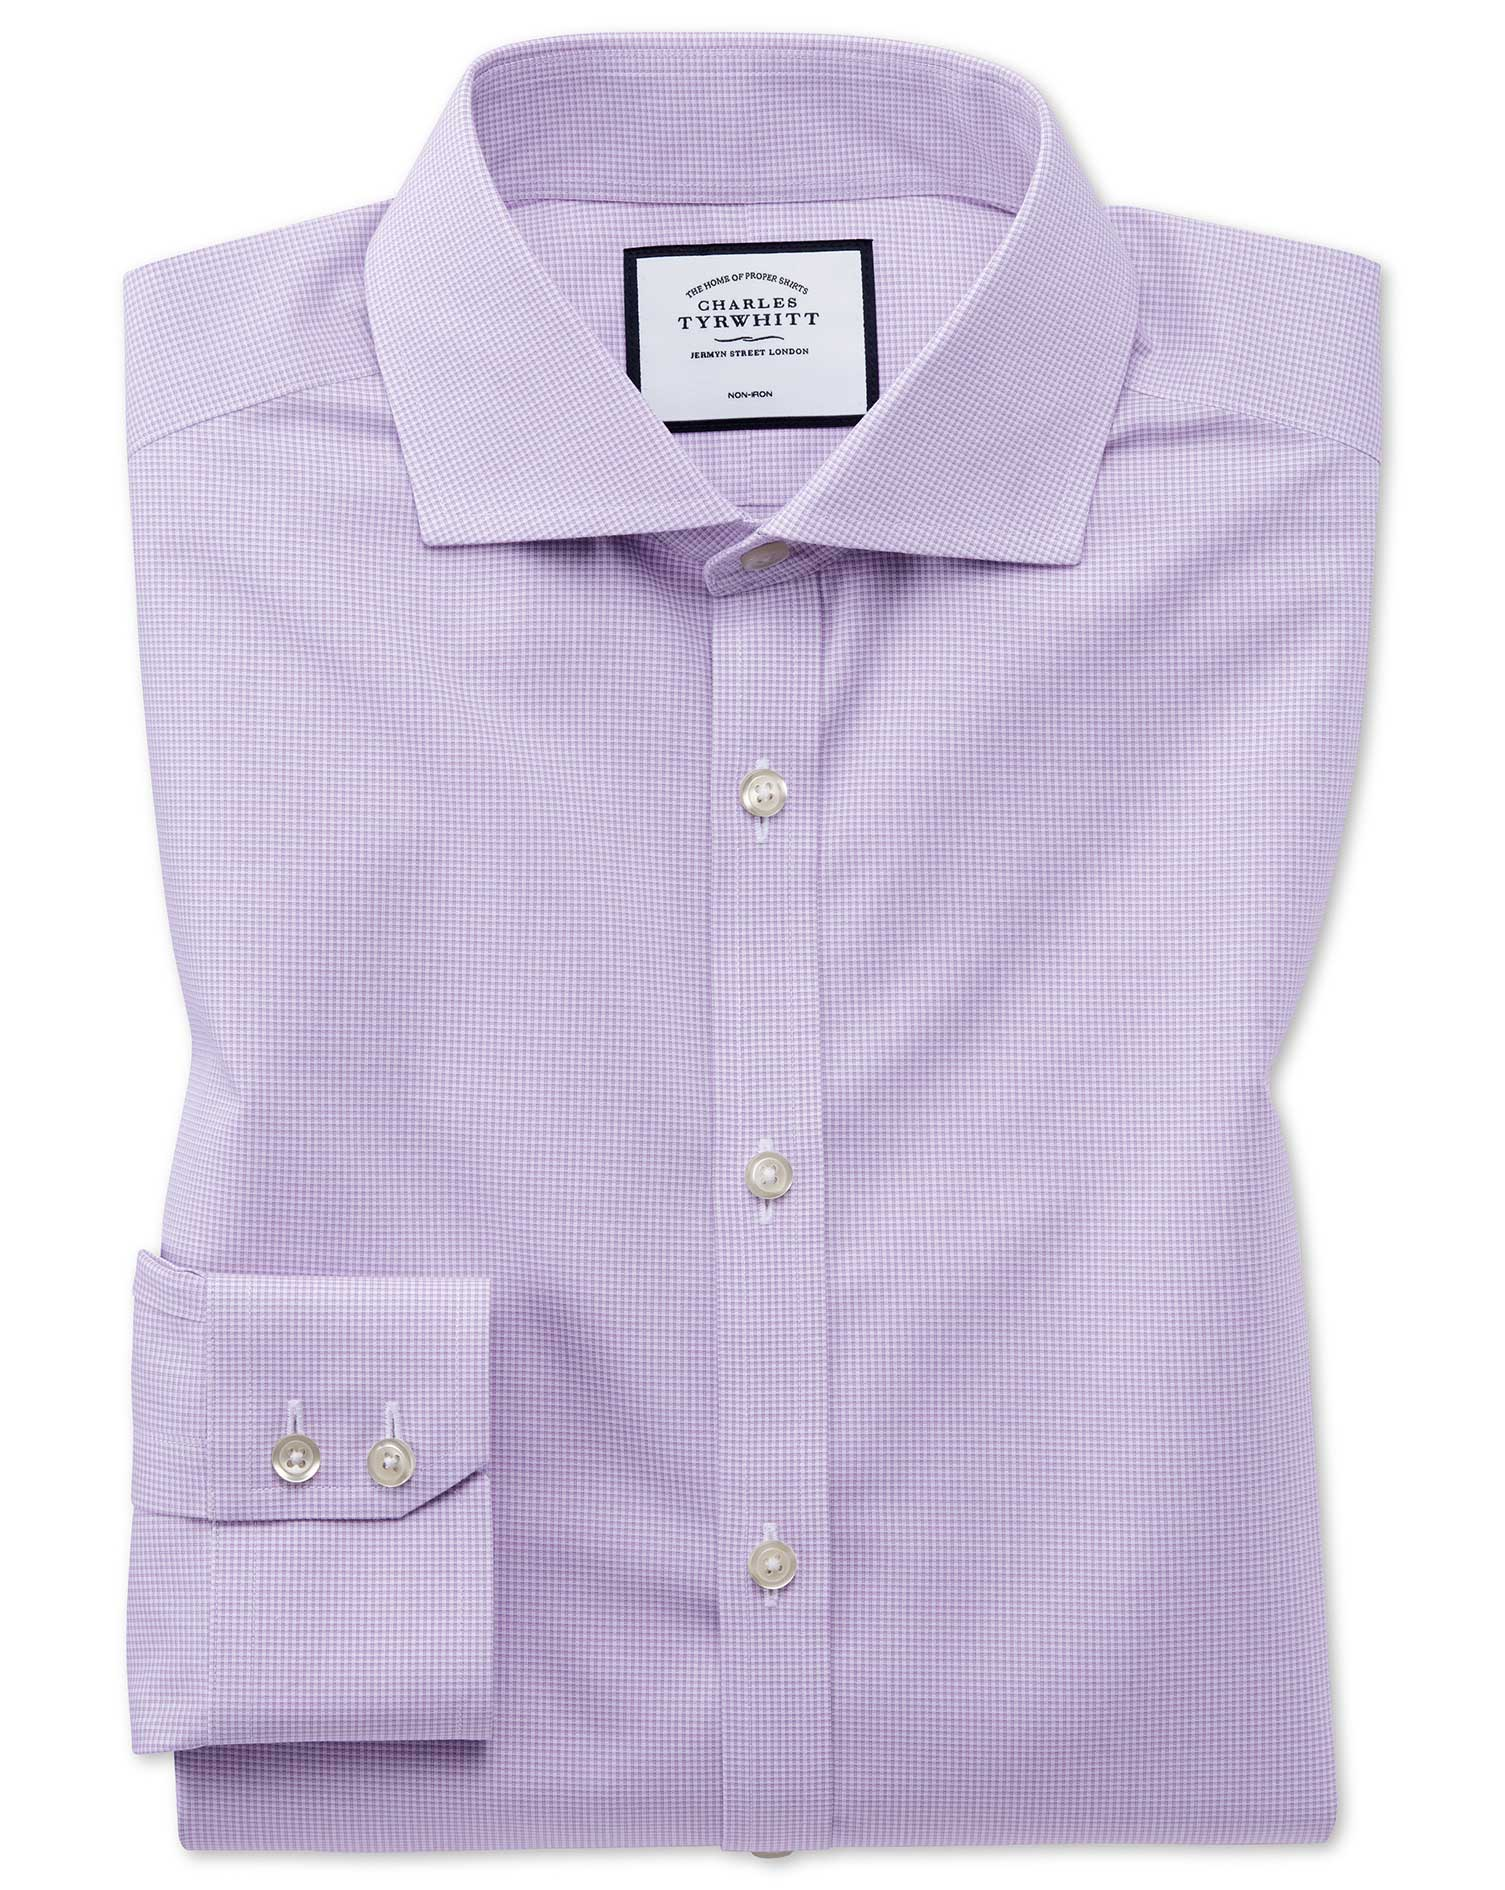 Extra Slim Fit Non-Iron 4-Way Stretch Lilac Check Cotton Formal Shirt Single Cuff Size 15/35 by Char